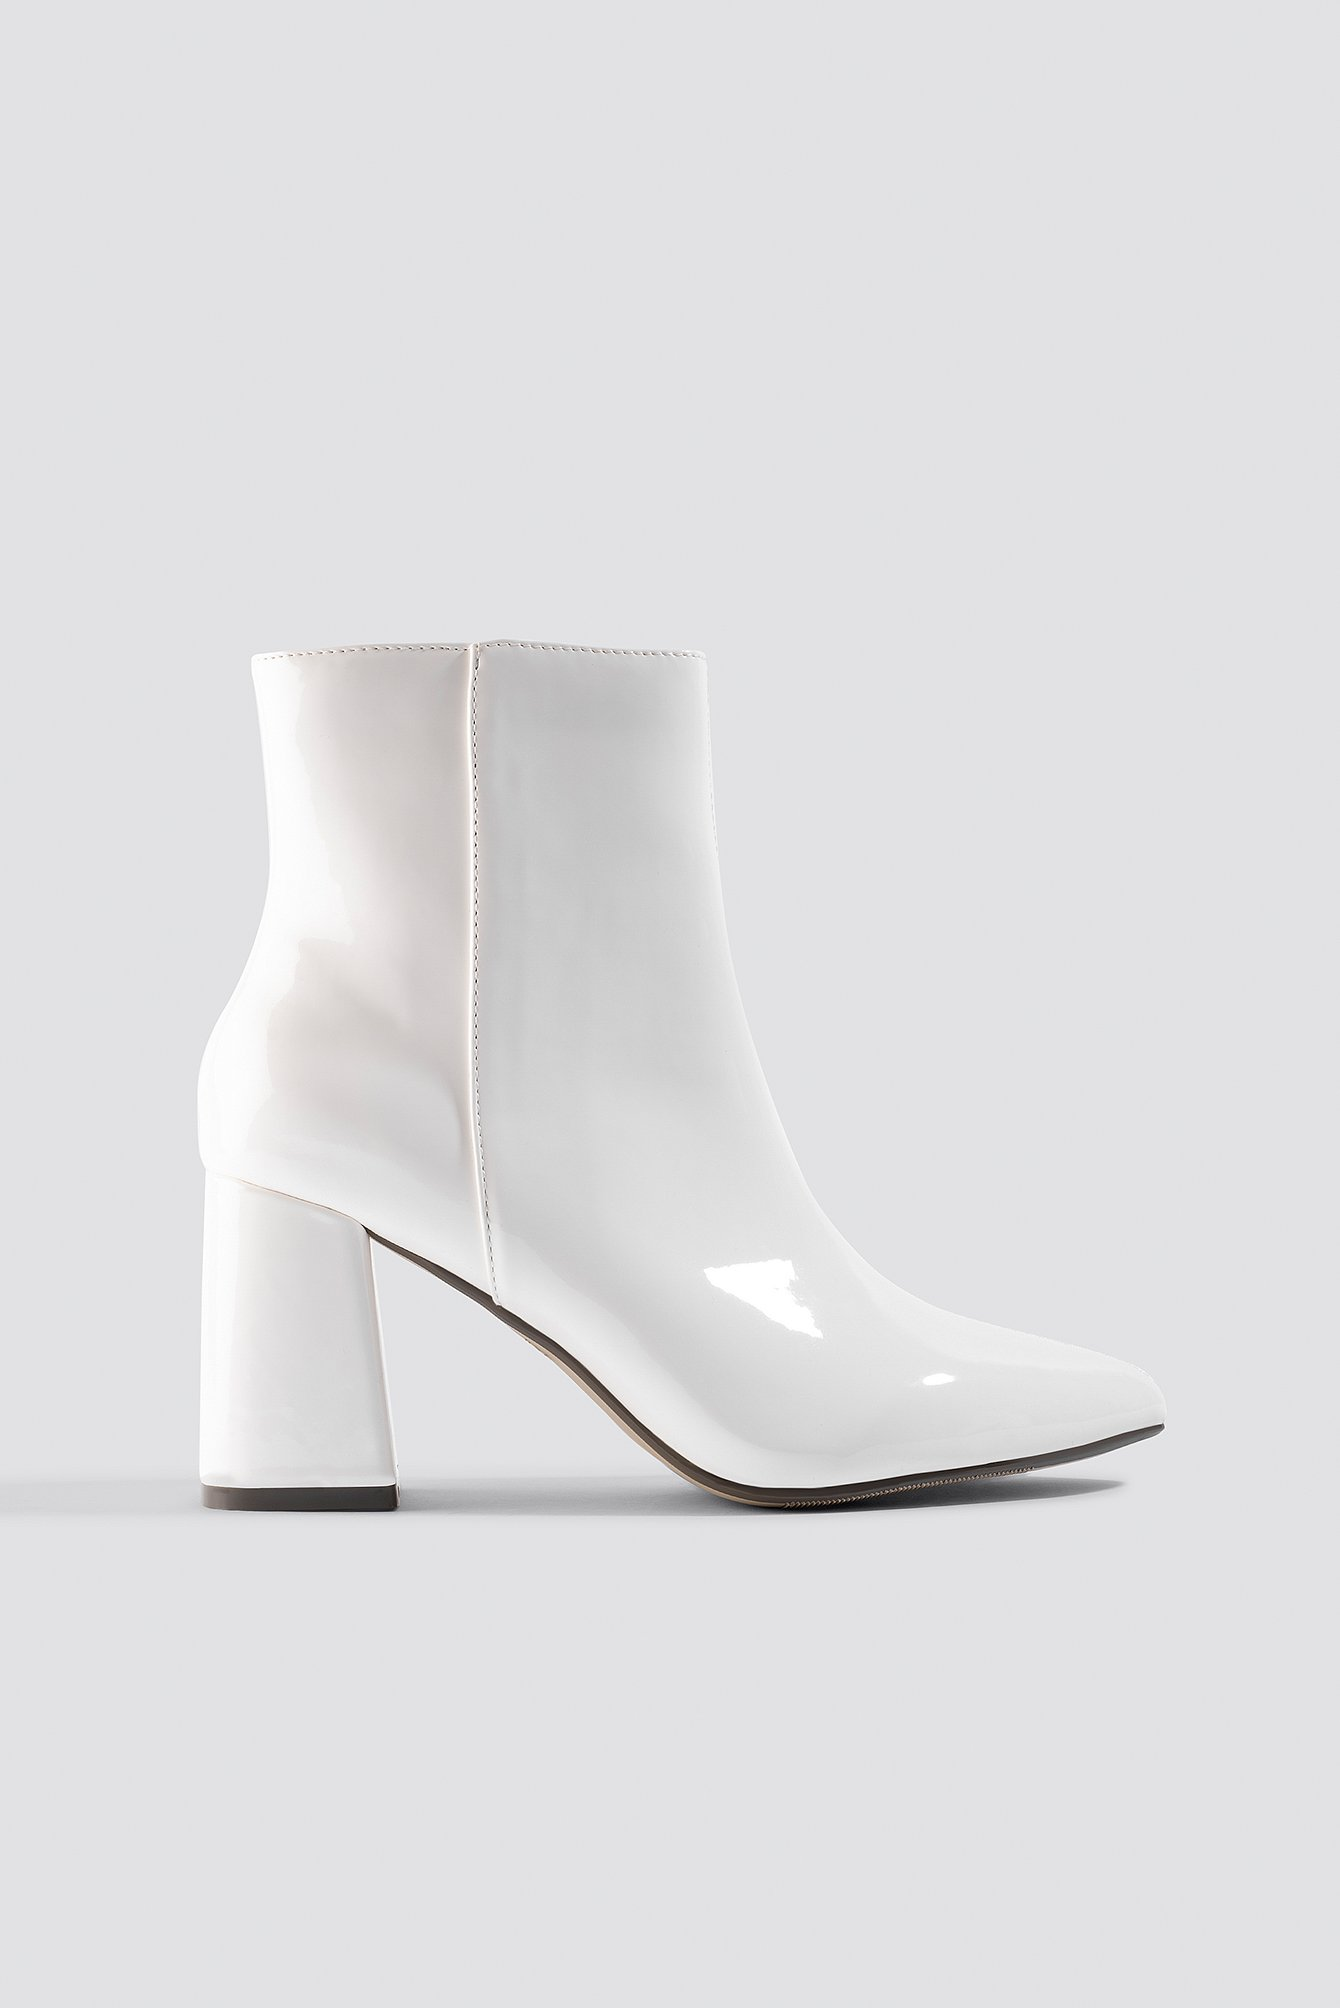 Glossy Patent Boots NA-KD.COM